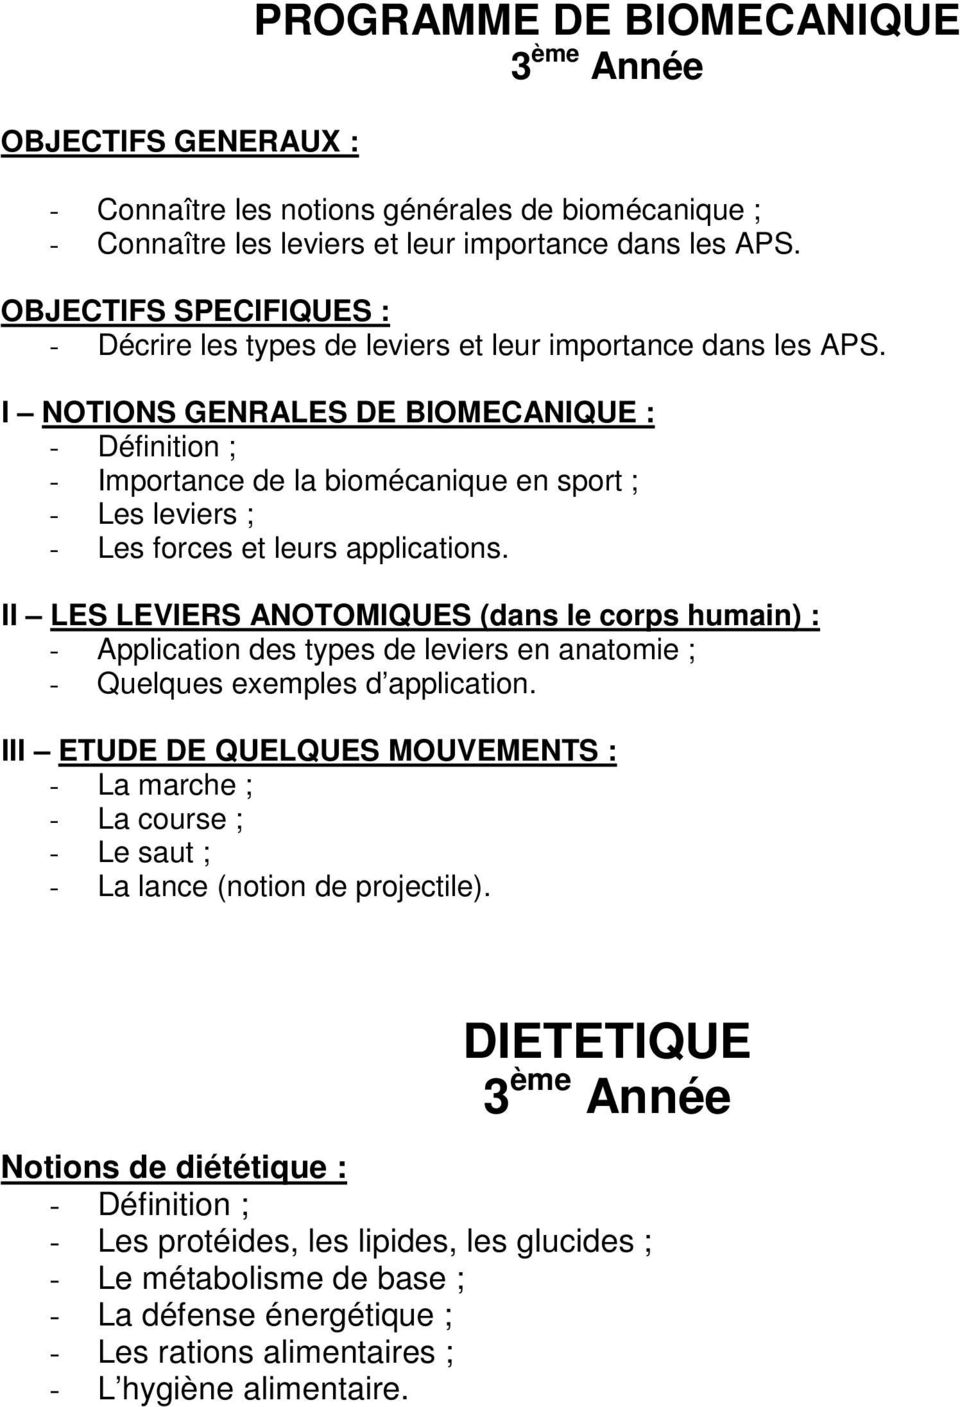 I NOTIONS GENRALES DE BIOMECANIQUE : - Définition ; - Importance de la biomécanique en sport ; - Les leviers ; - Les forces et leurs applications.